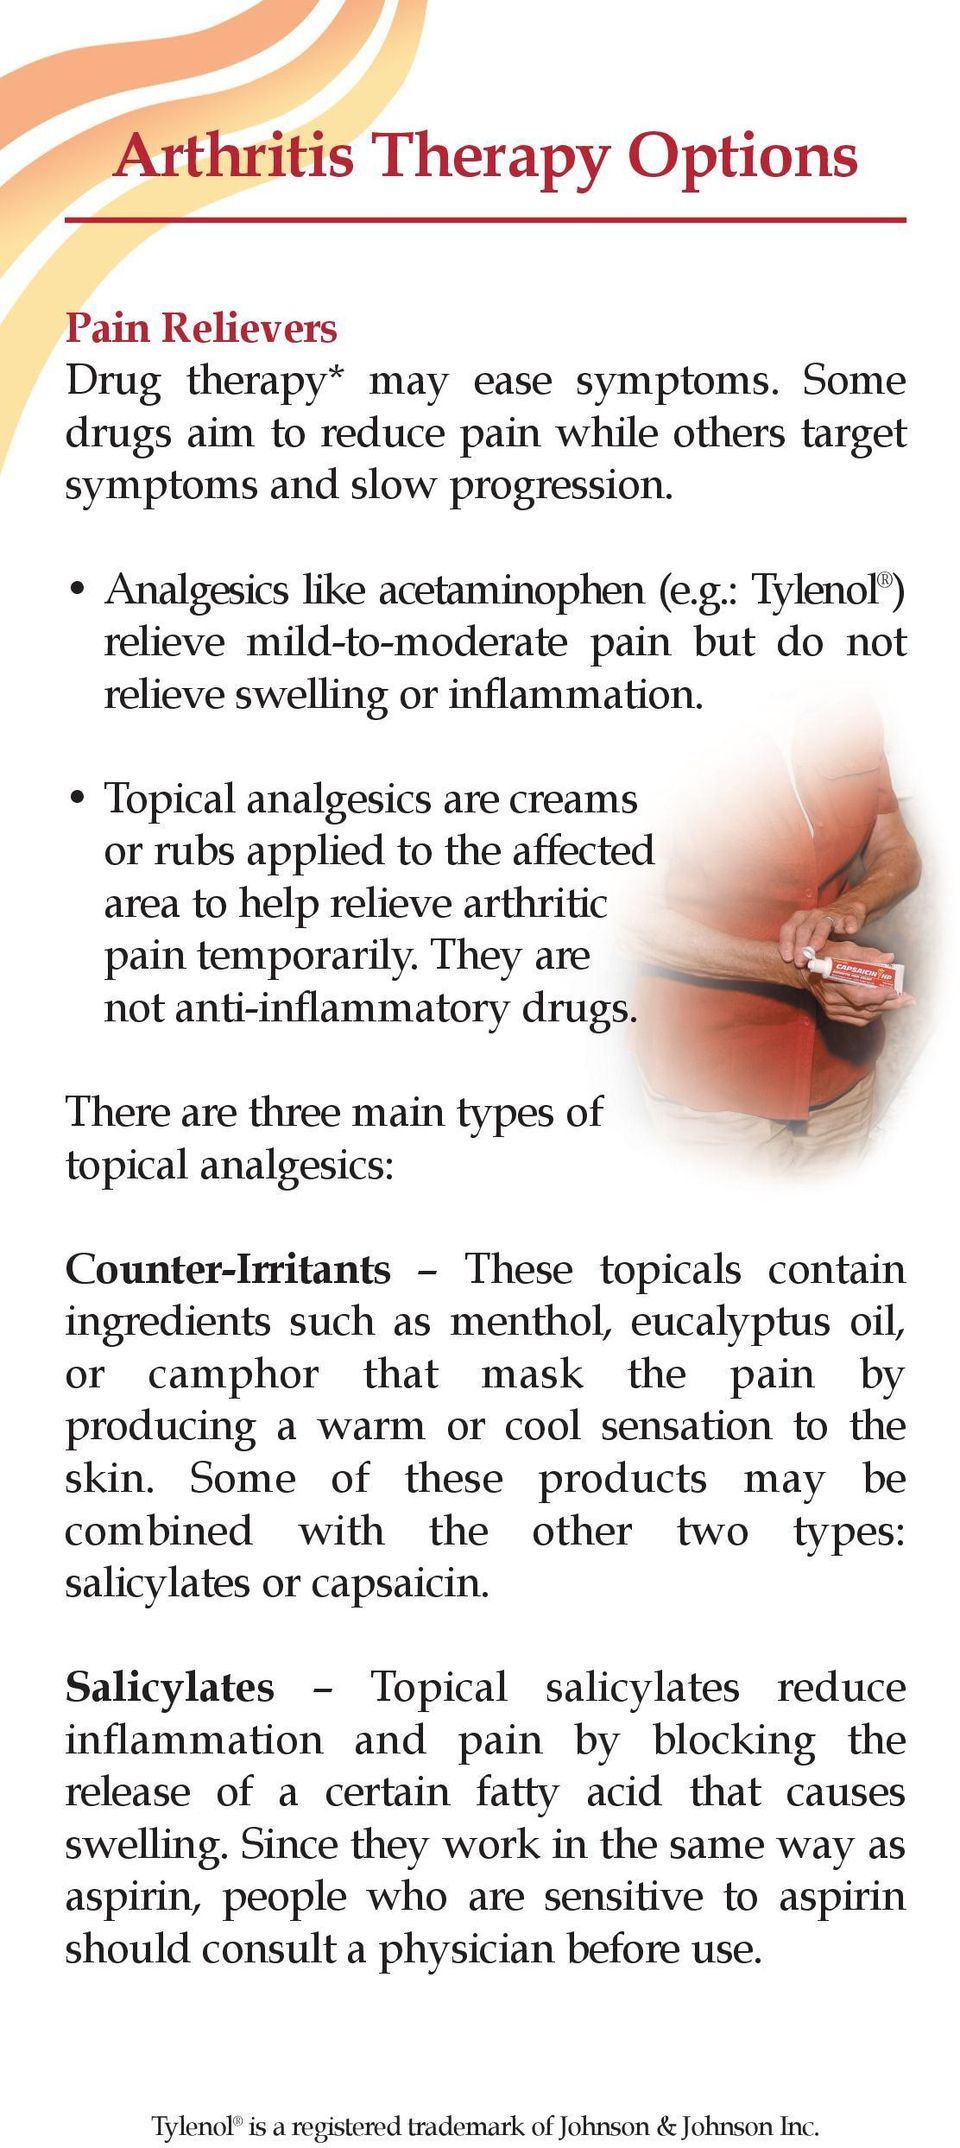 There are three main types of topical analgesics: Counter-Irritants These topicals contain ingredients such as menthol, eucalyptus oil, or camphor that mask the pain by producing a warm or cool